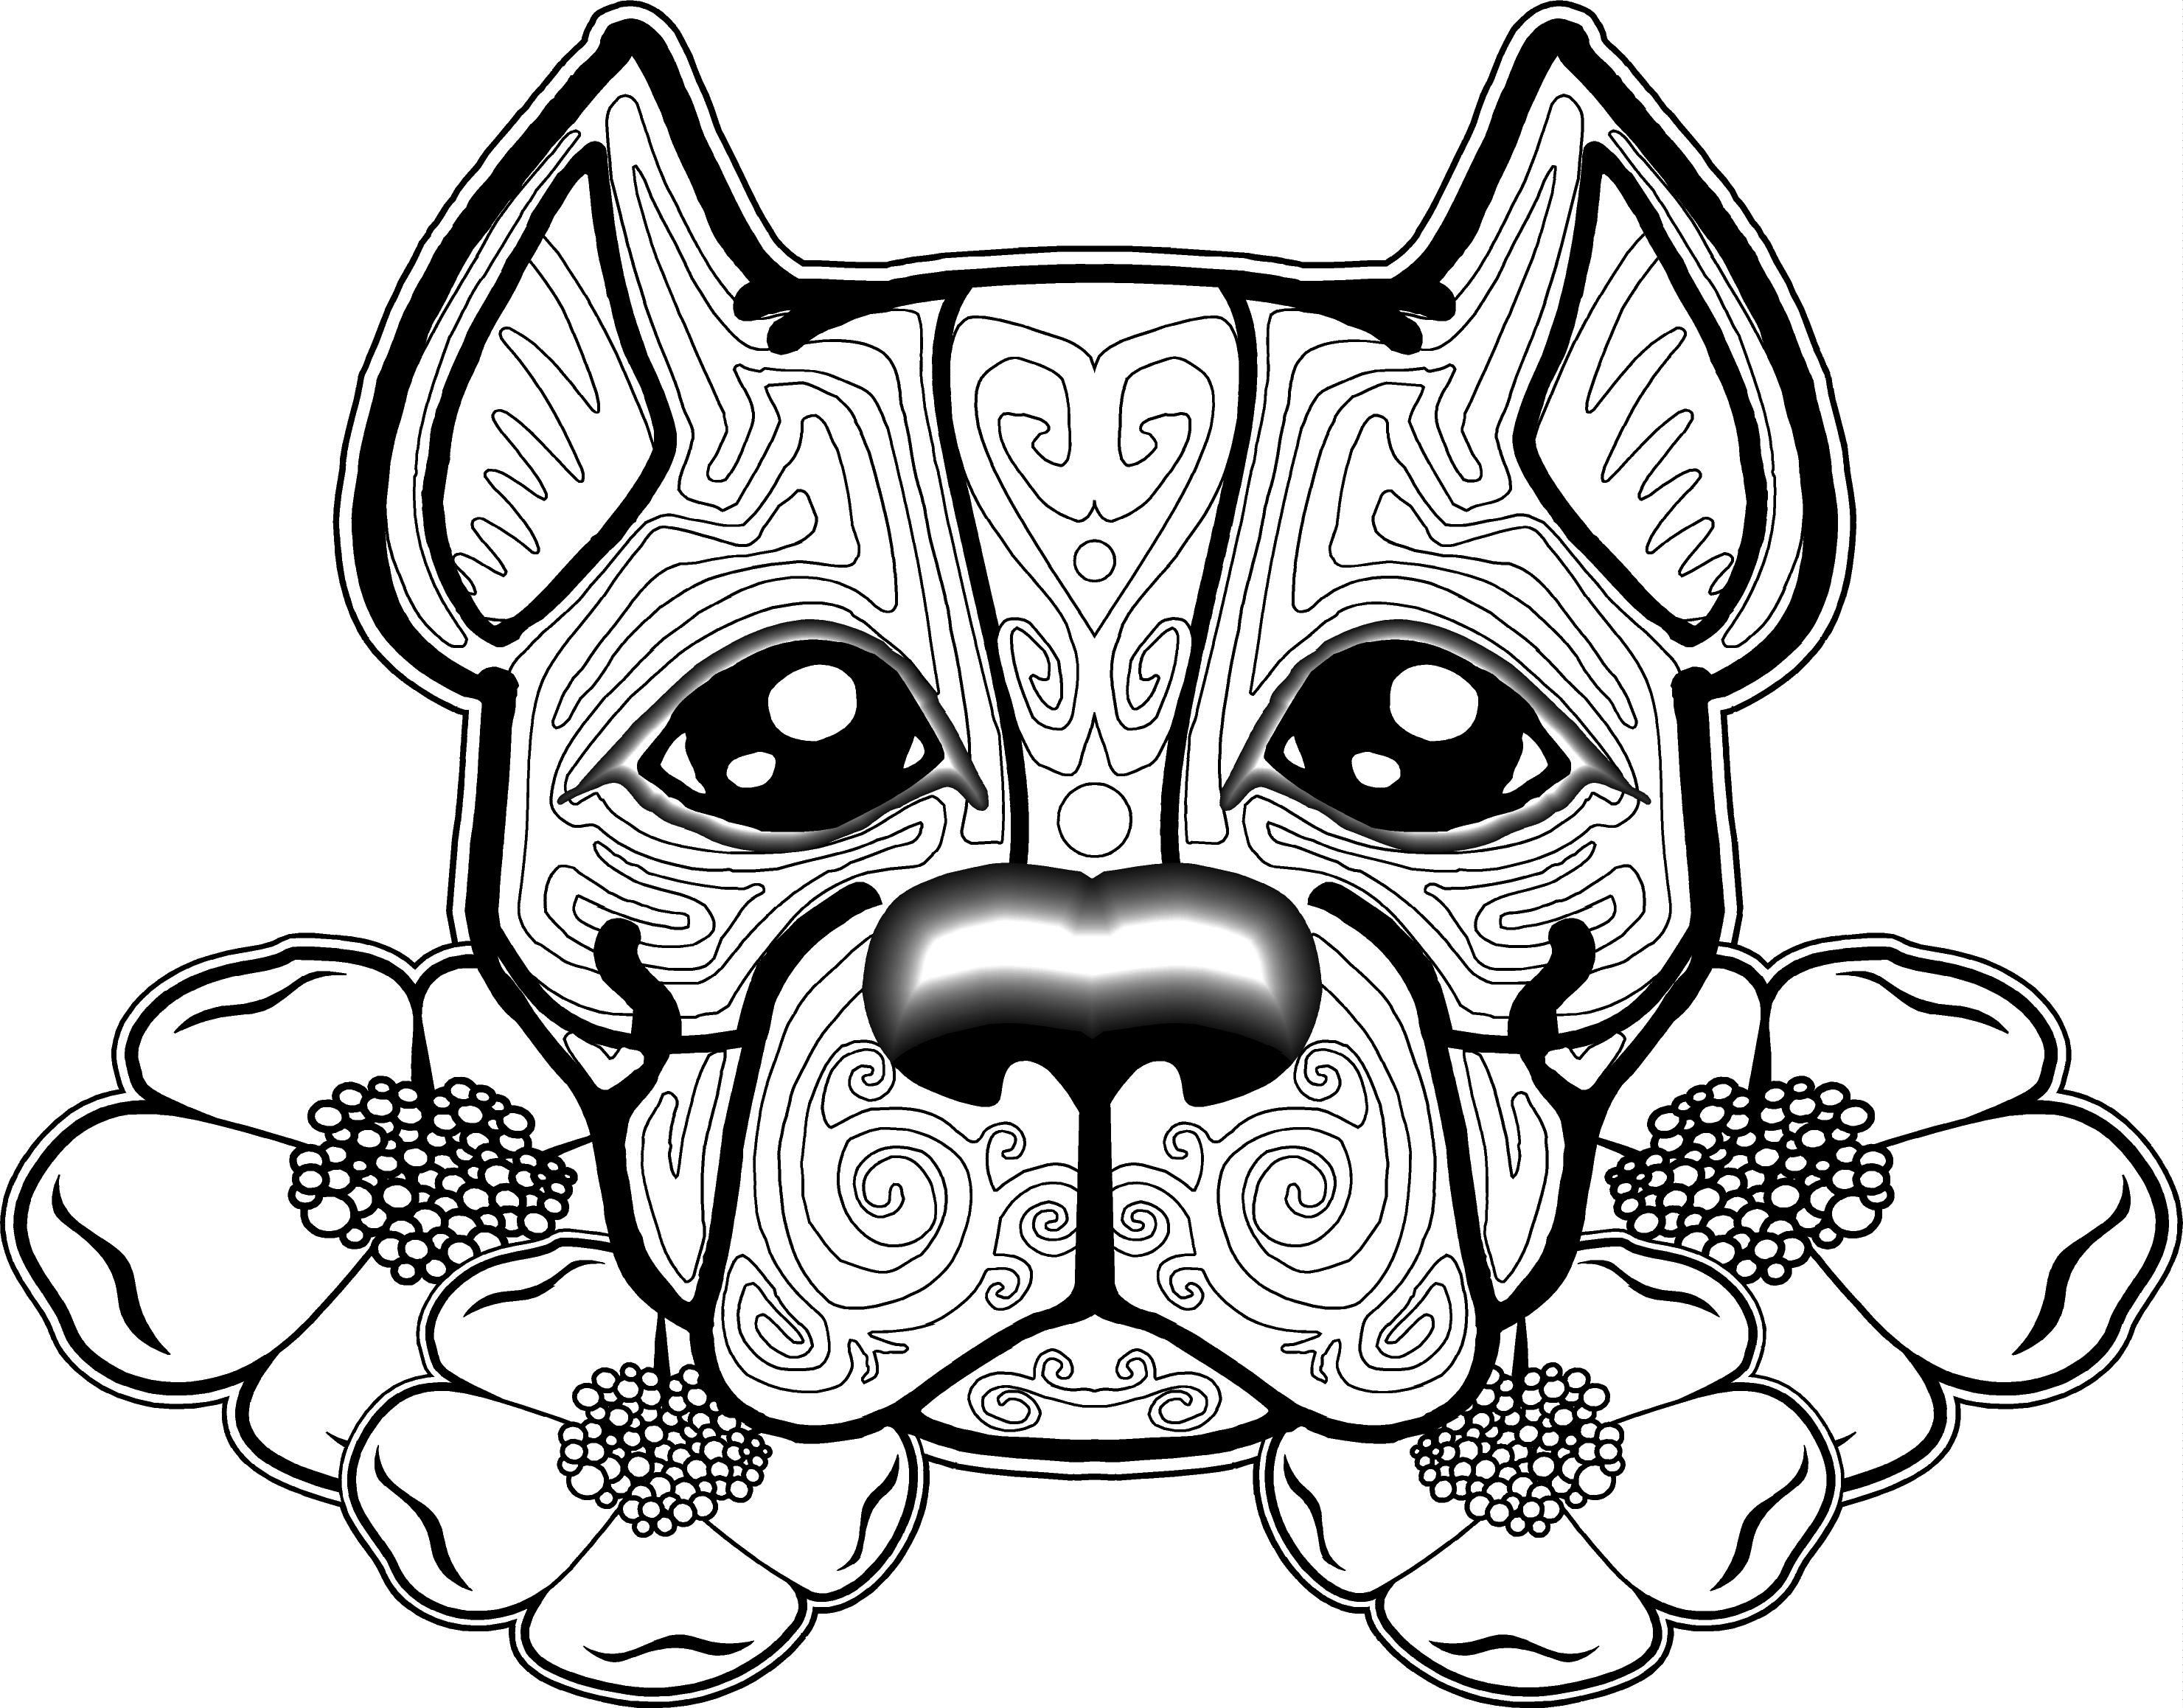 Printable coloring pages with animals - Free Dog Coloring Pages For Adults